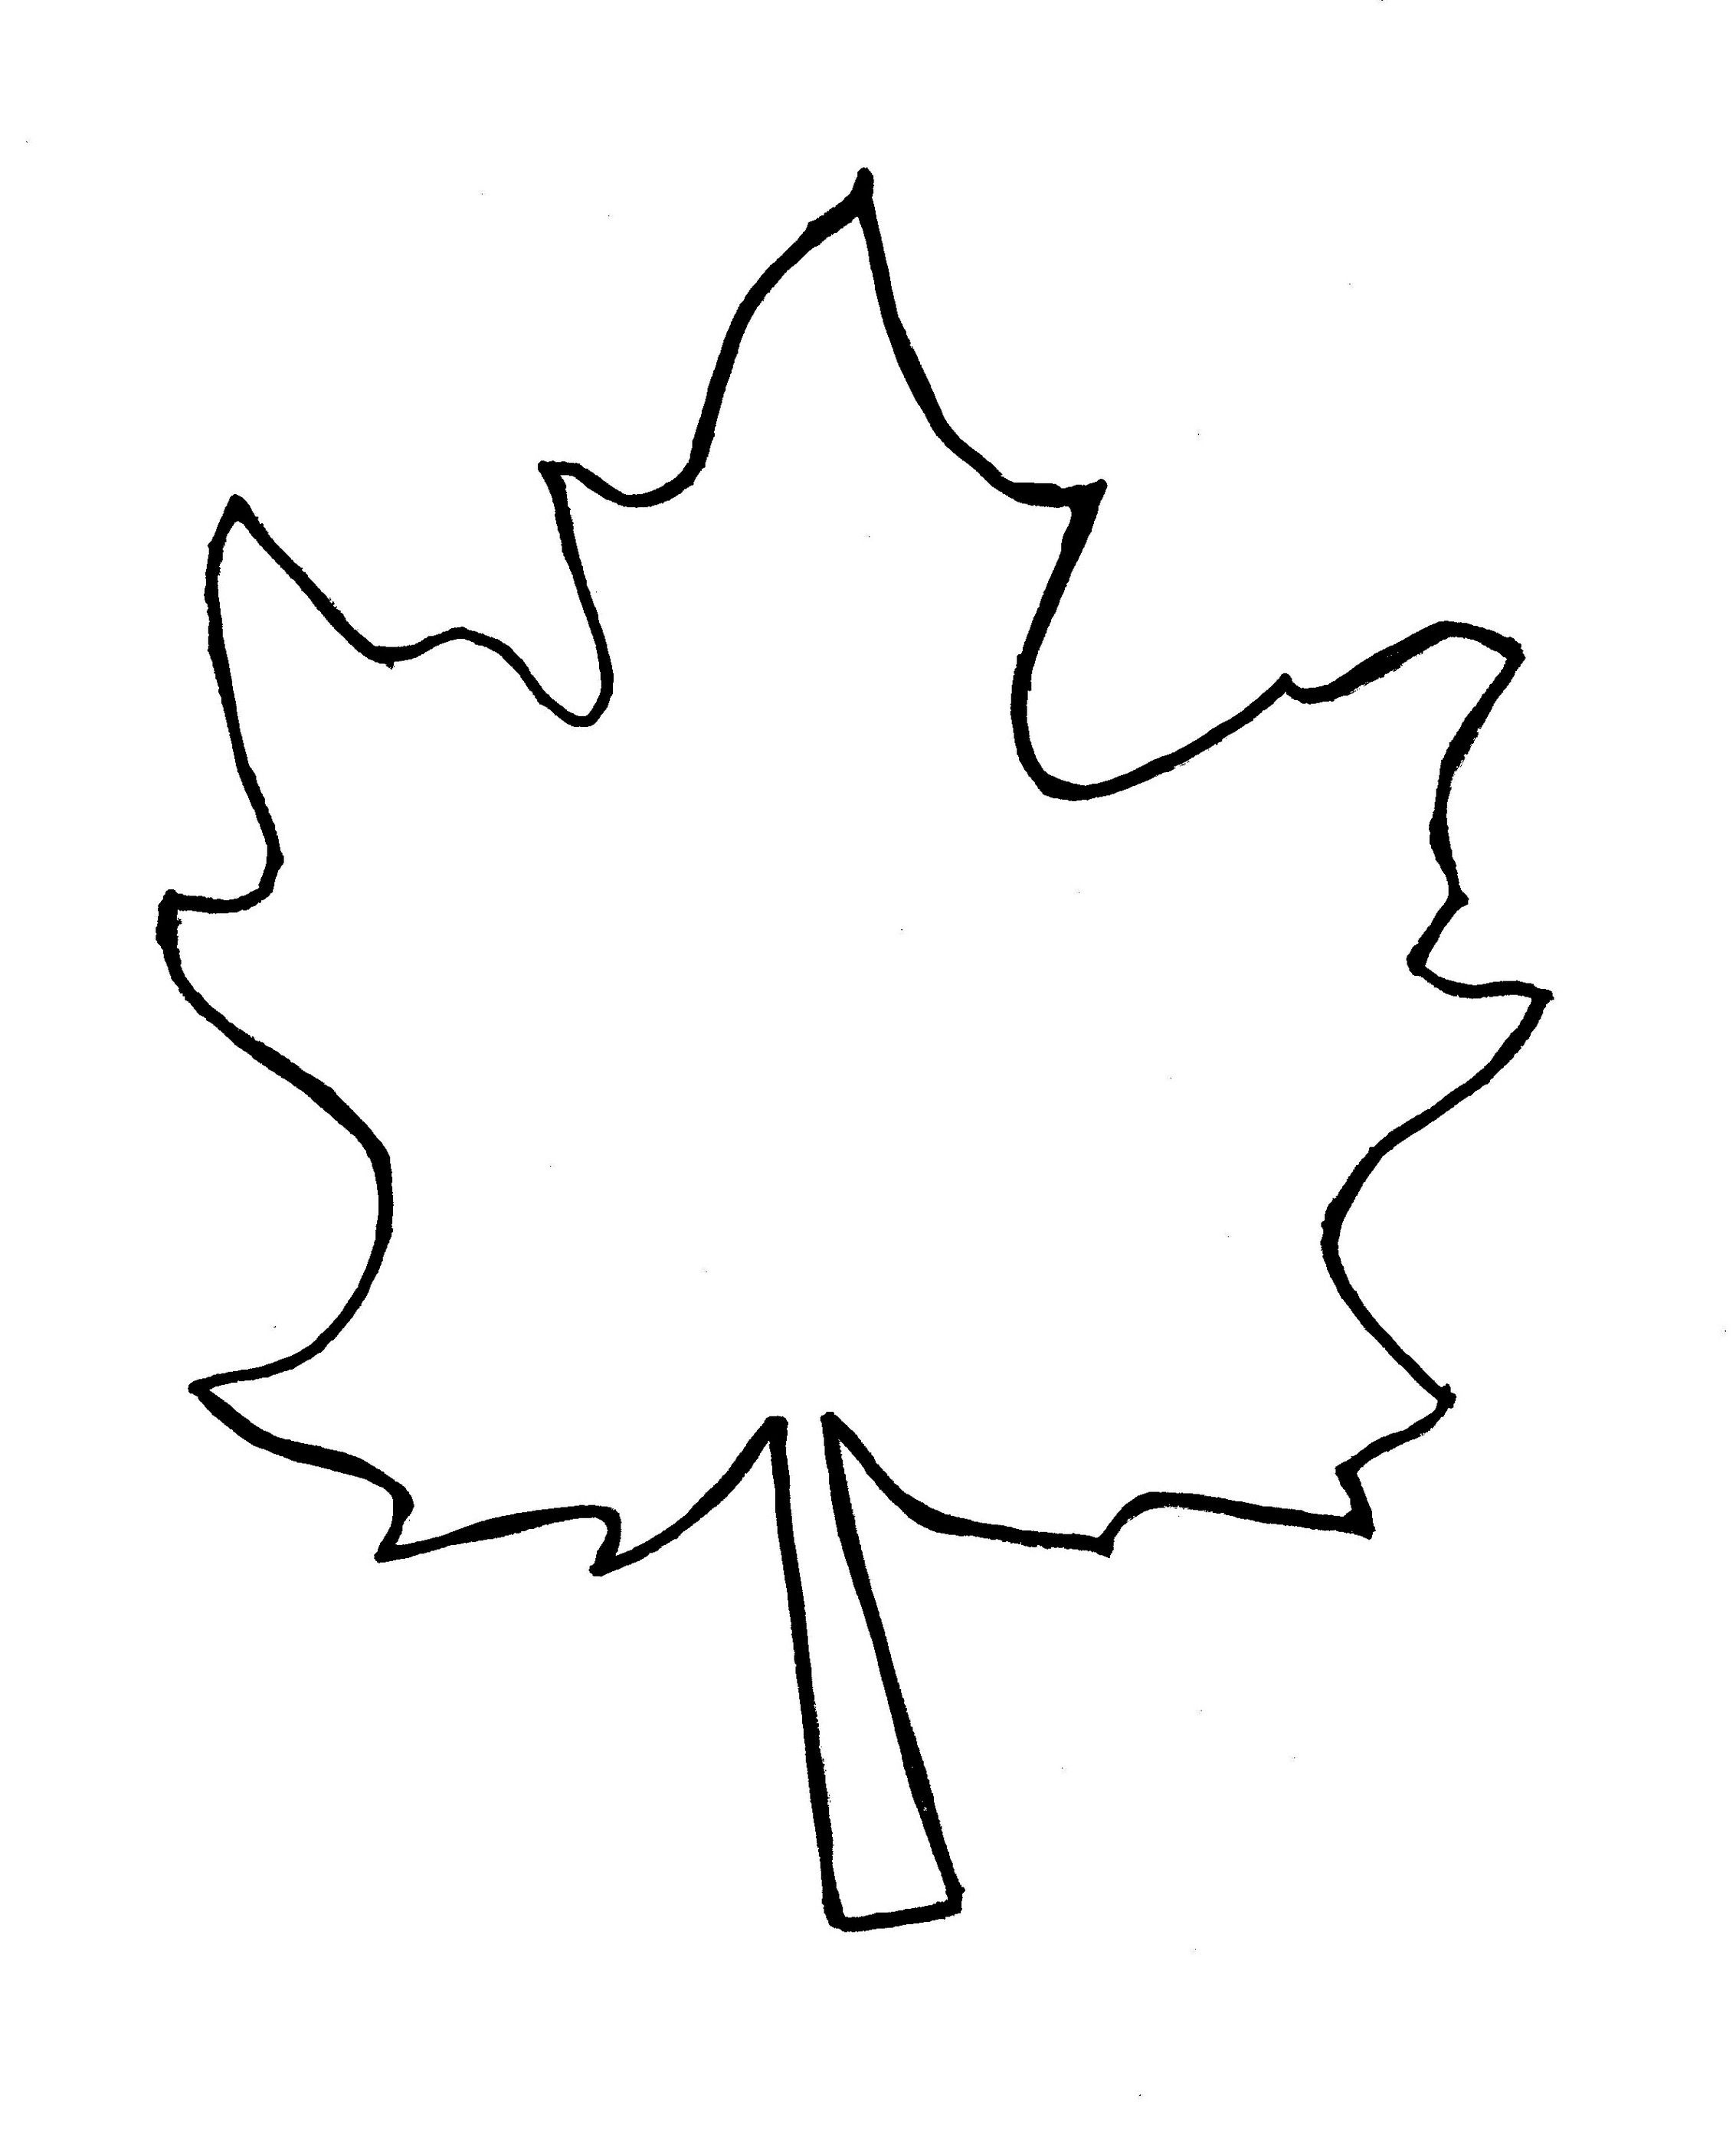 Autumn Leaf Outline Template Clipart Free To Use Clip Art Resource 2 - Free Printable Pictures Of Autumn Leaves